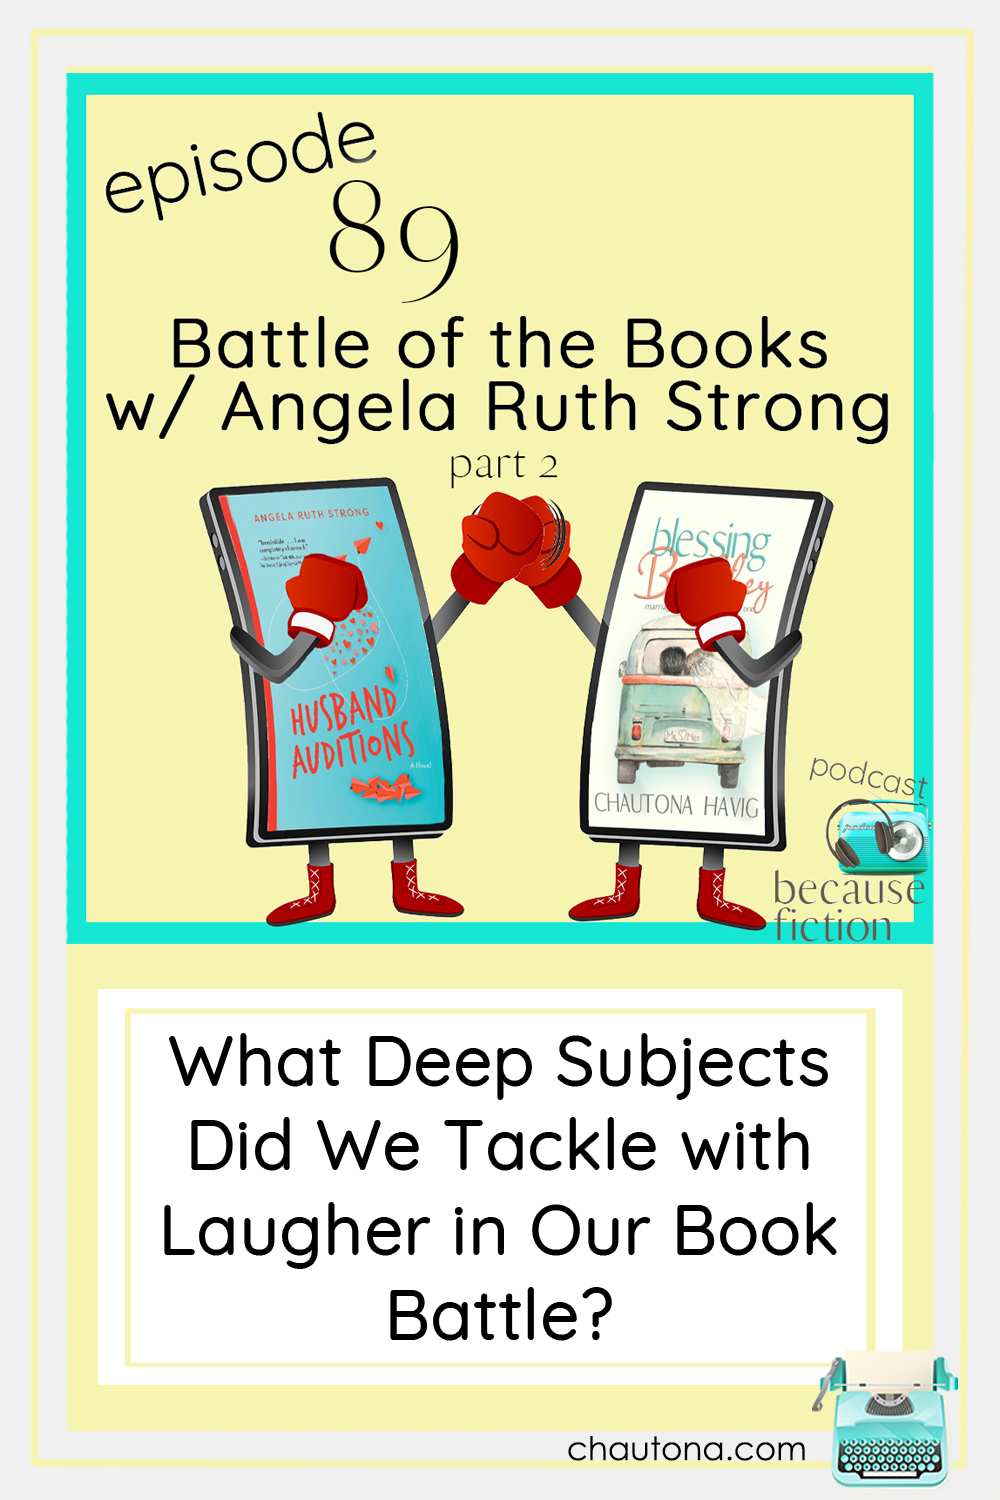 Angela Ruth Strong and I continue our so-called Battle of the Books in part two of this episode. Here we go deeper... but we don't stop laughing! via @chautonahavig